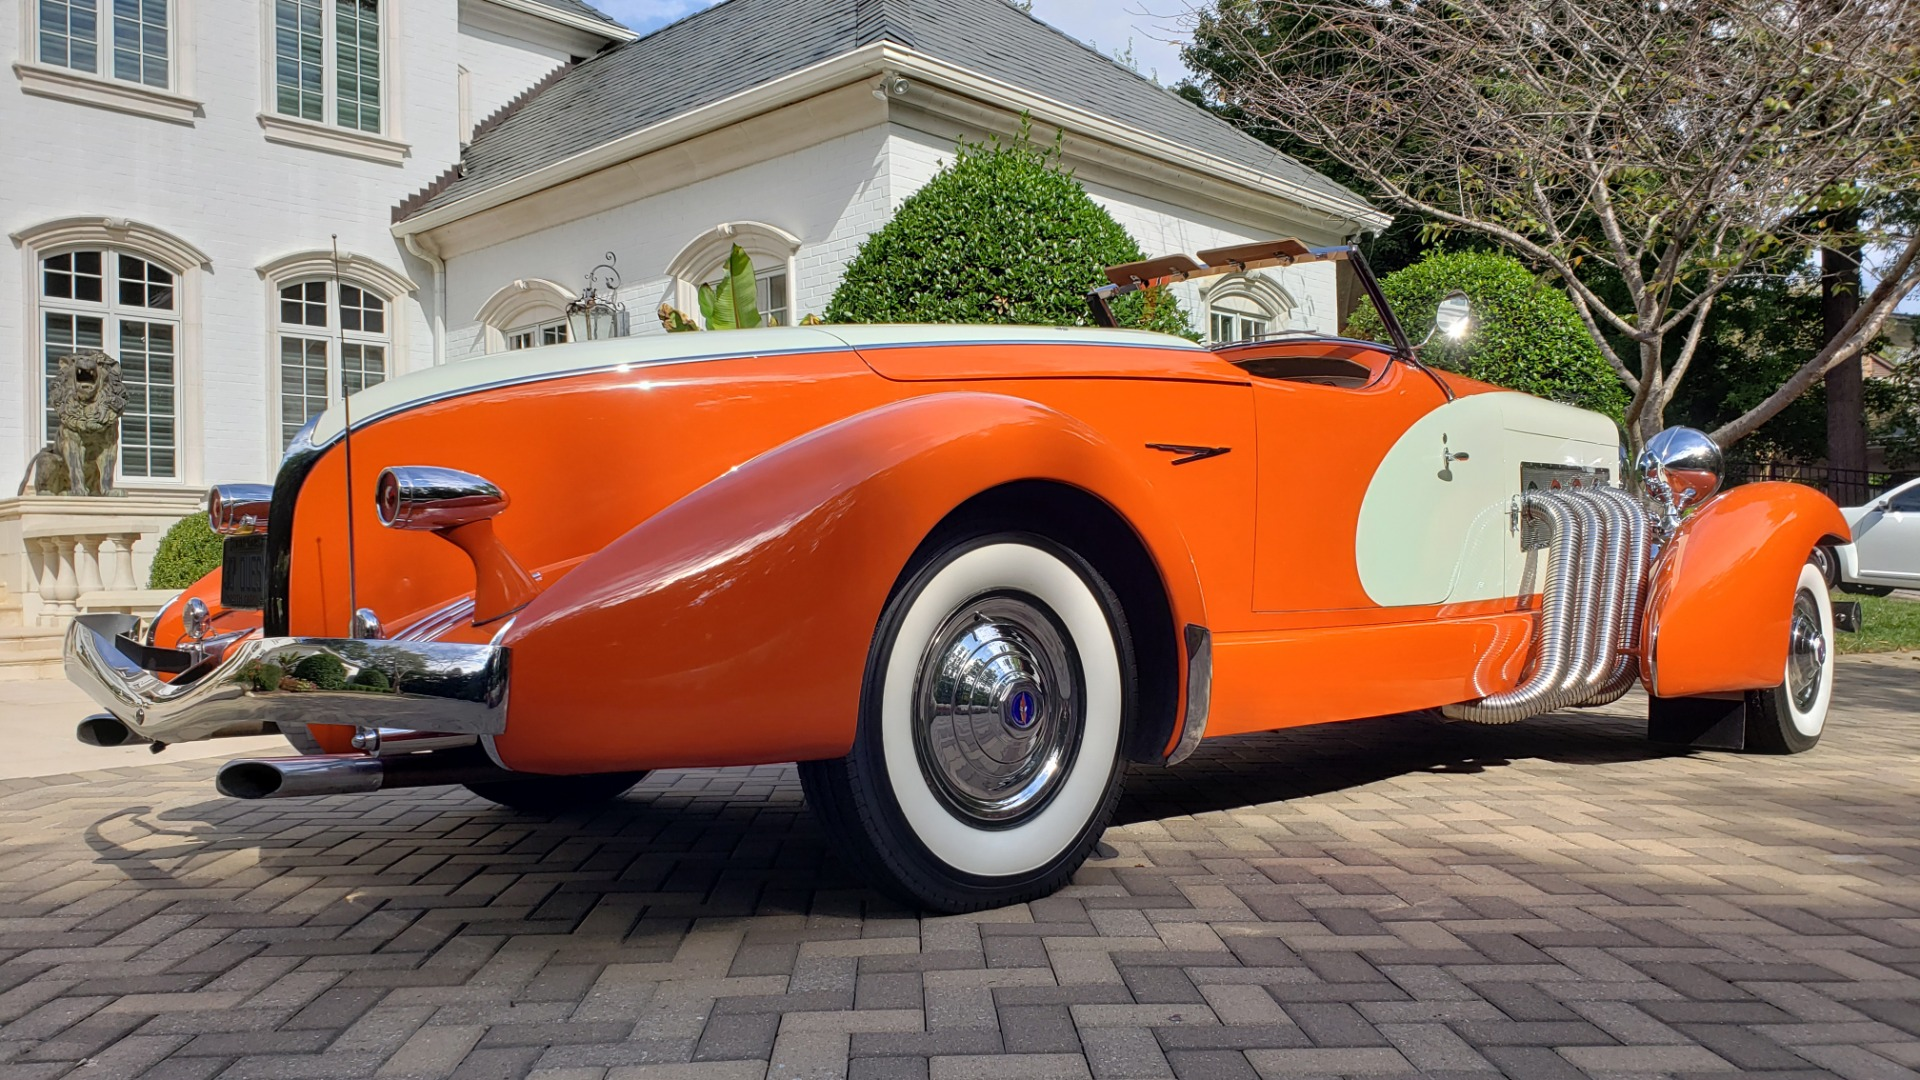 Used 1979 Duesenberg 1933 SJ BOATTAIL SPEEDSTER REPLICA / FORD V8 / AUTO TRANS / SUPER CLEAN for sale $379,000 at Formula Imports in Charlotte NC 28227 5